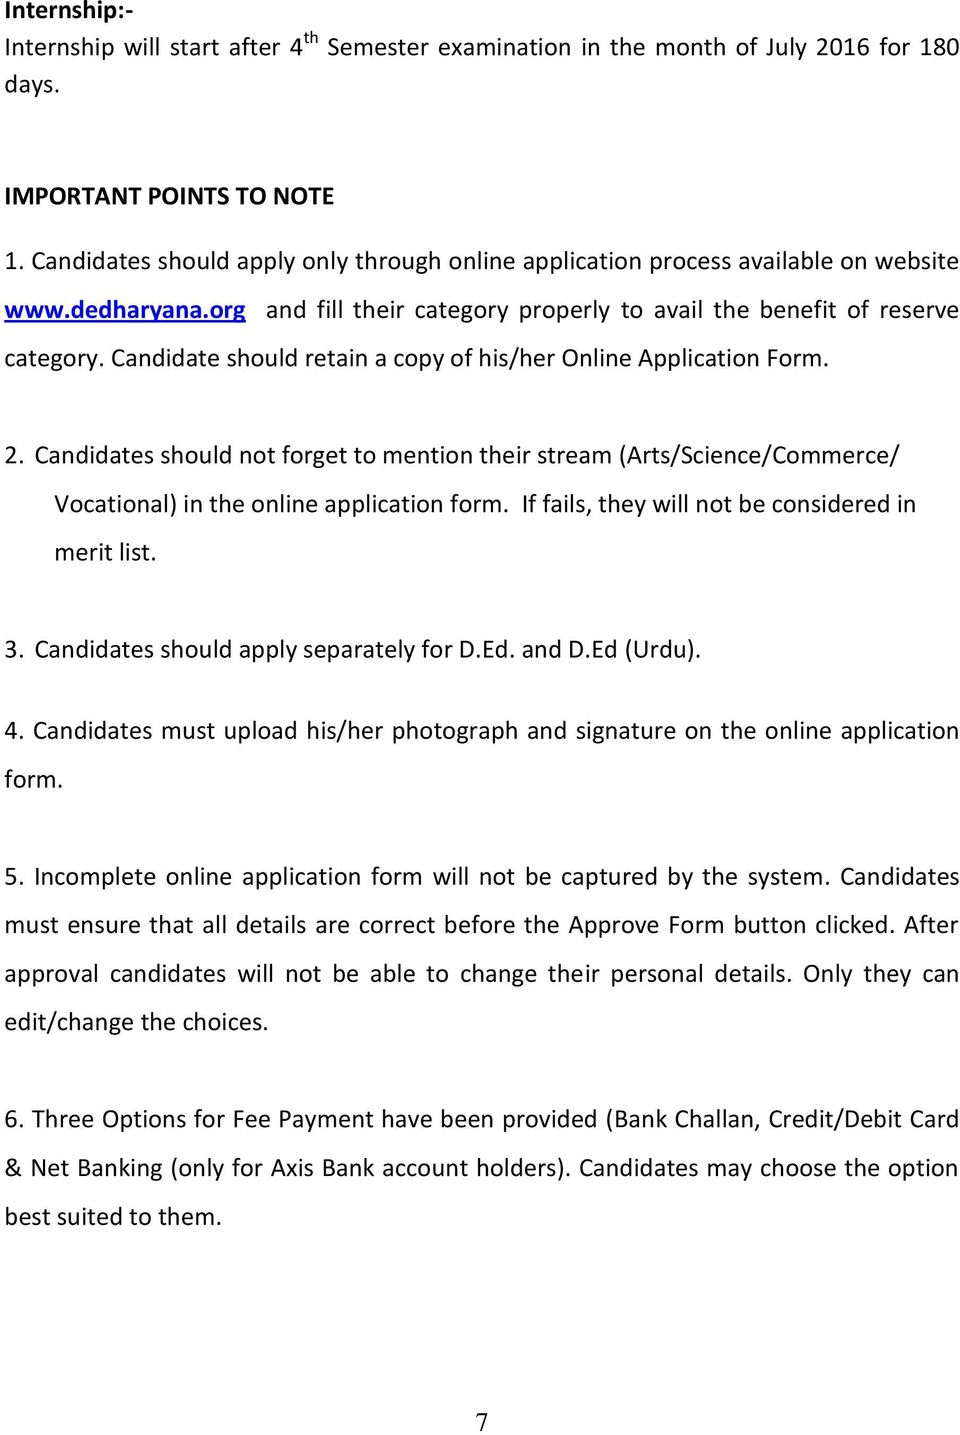 Lovely Axis Bank Online Resume Upload Photos - Entry Level Resume ...